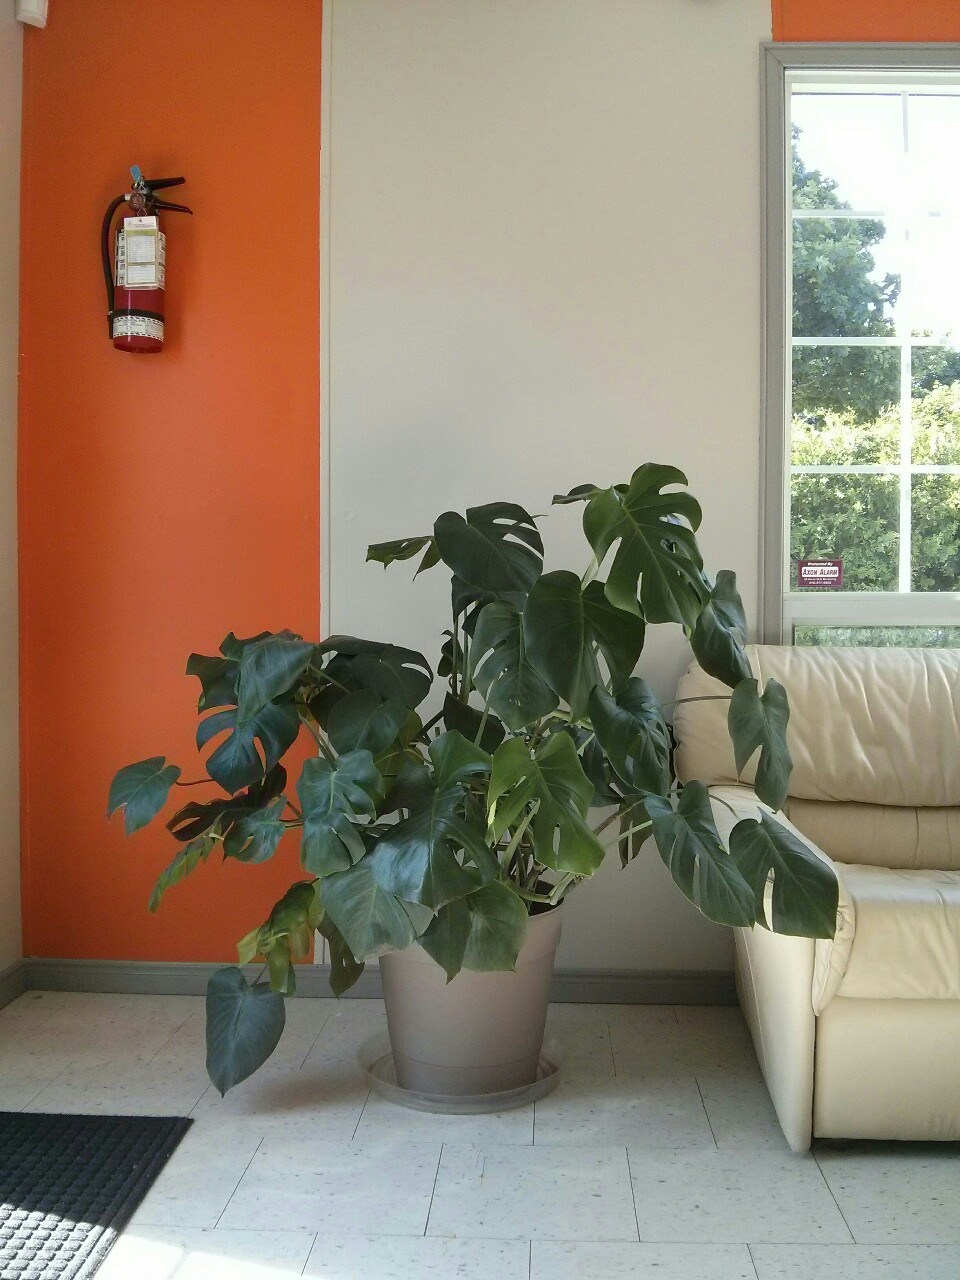 Don't worry, monstera! I'll be seeing you every week - this place has more space for you to grow and better light. LEFT: a west-facing windowed door. BACK RIGHT: a large north-facing window.